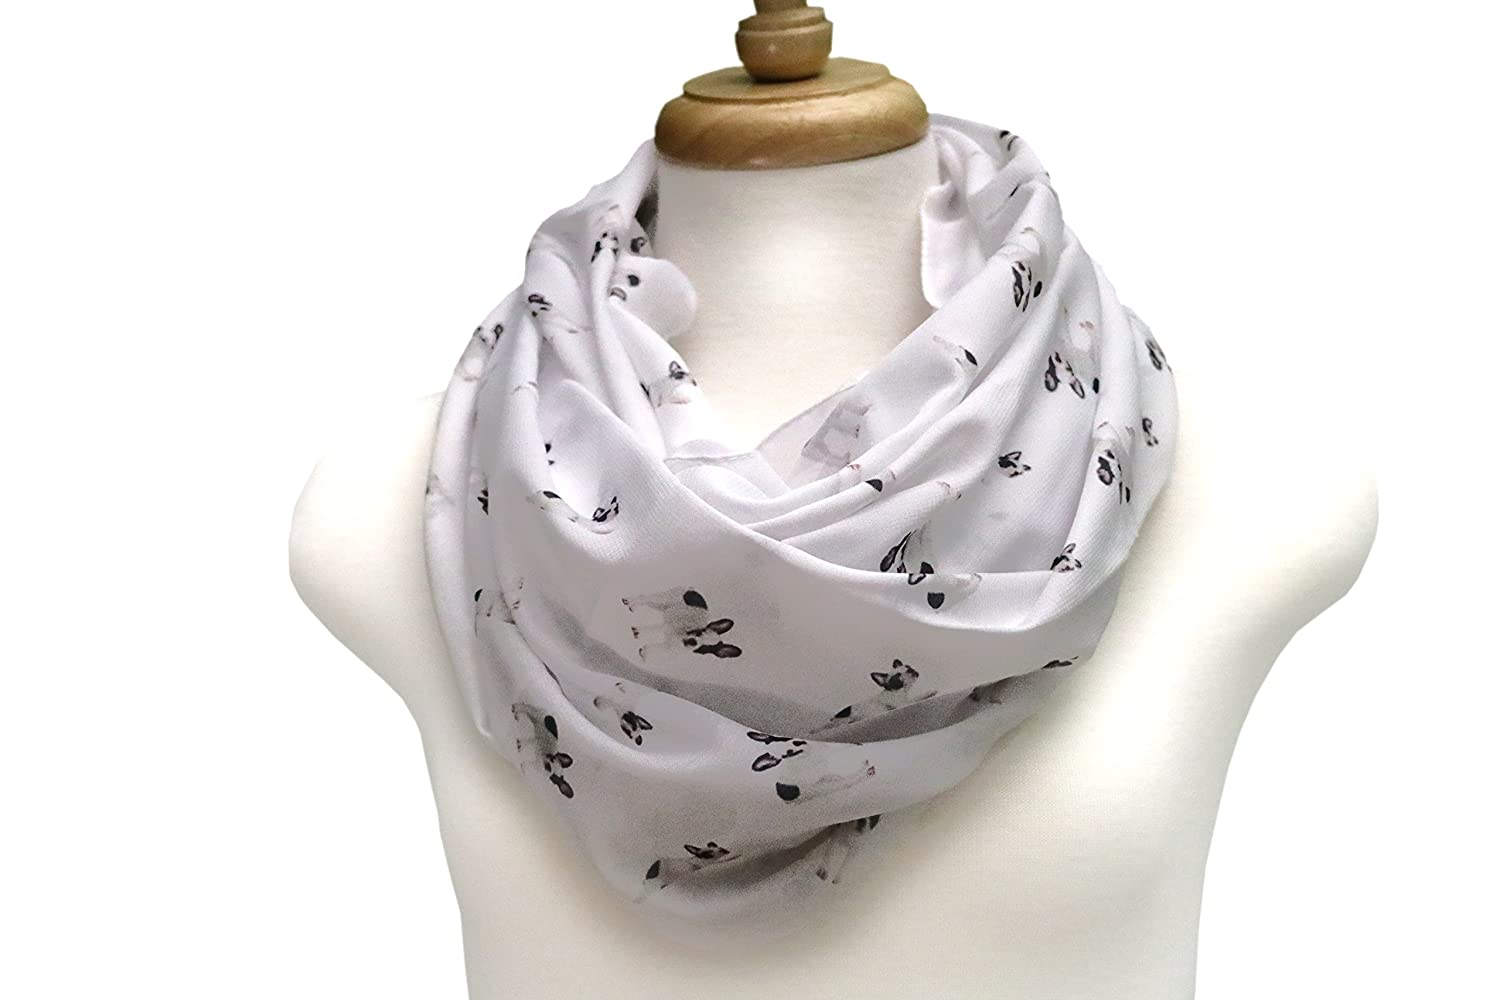 40% OFF Handmade French Bulldog Infinity scarf by Di Capanni (Colored on White)